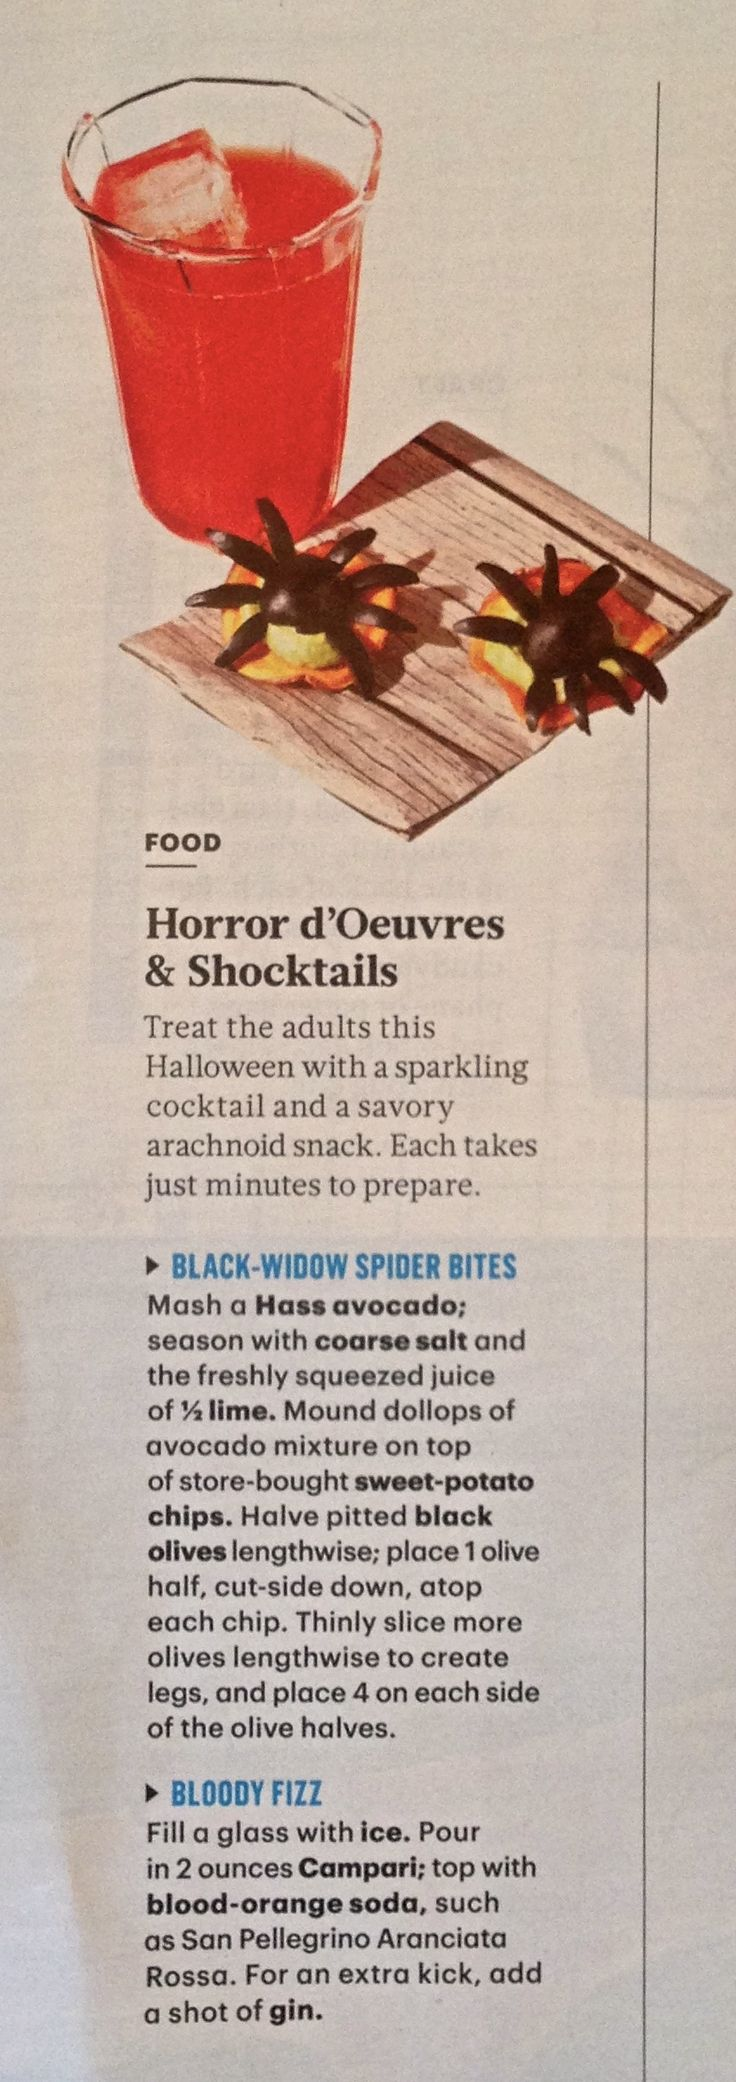 Martha Stewart Living Recipe for Halloween Cocktail with Campari and Blood Orange Soda